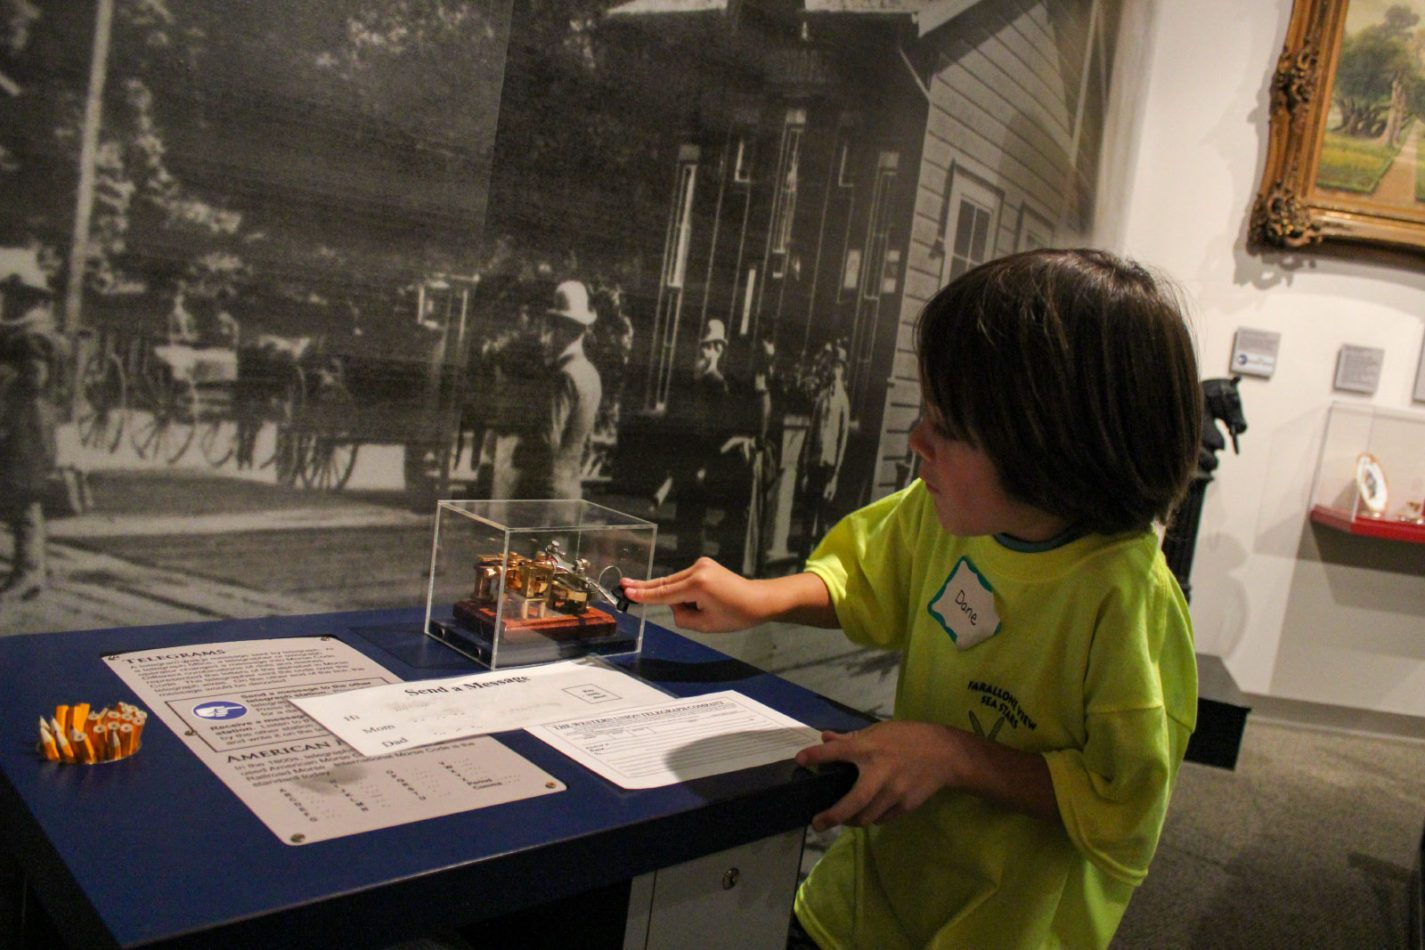 Students send a telegram in the exhibit Journey to Work as part of Getting from Here to There school program at the San Mateo County History Museum